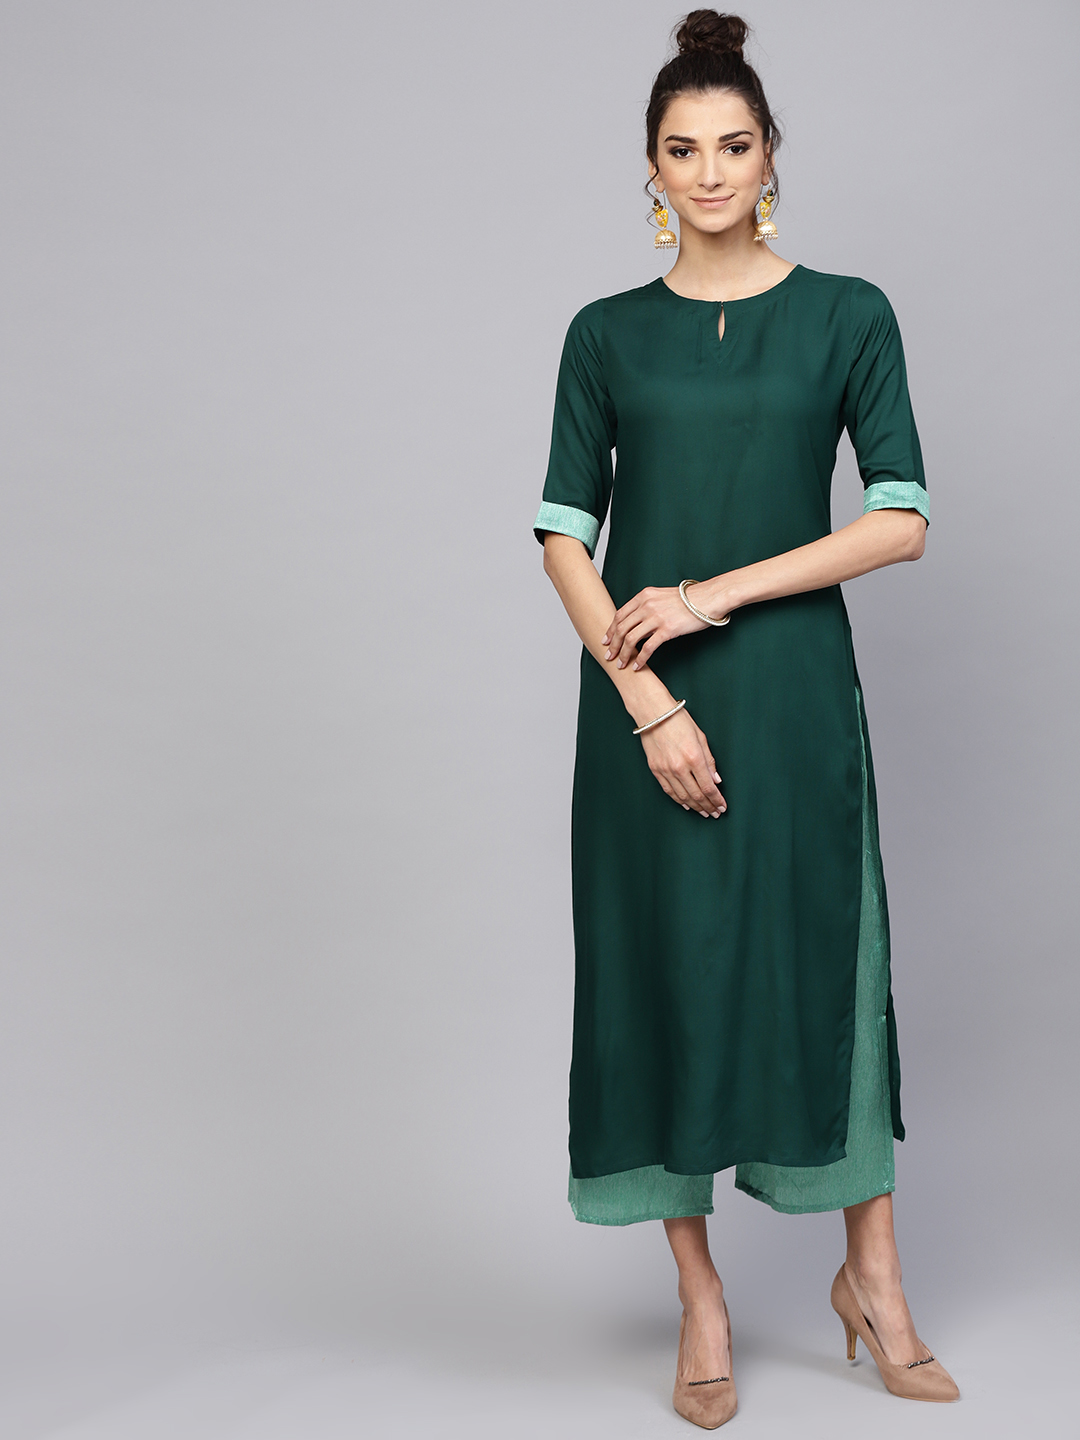 Women's Latest Designer Green Rayon Kurtis With Palazzo